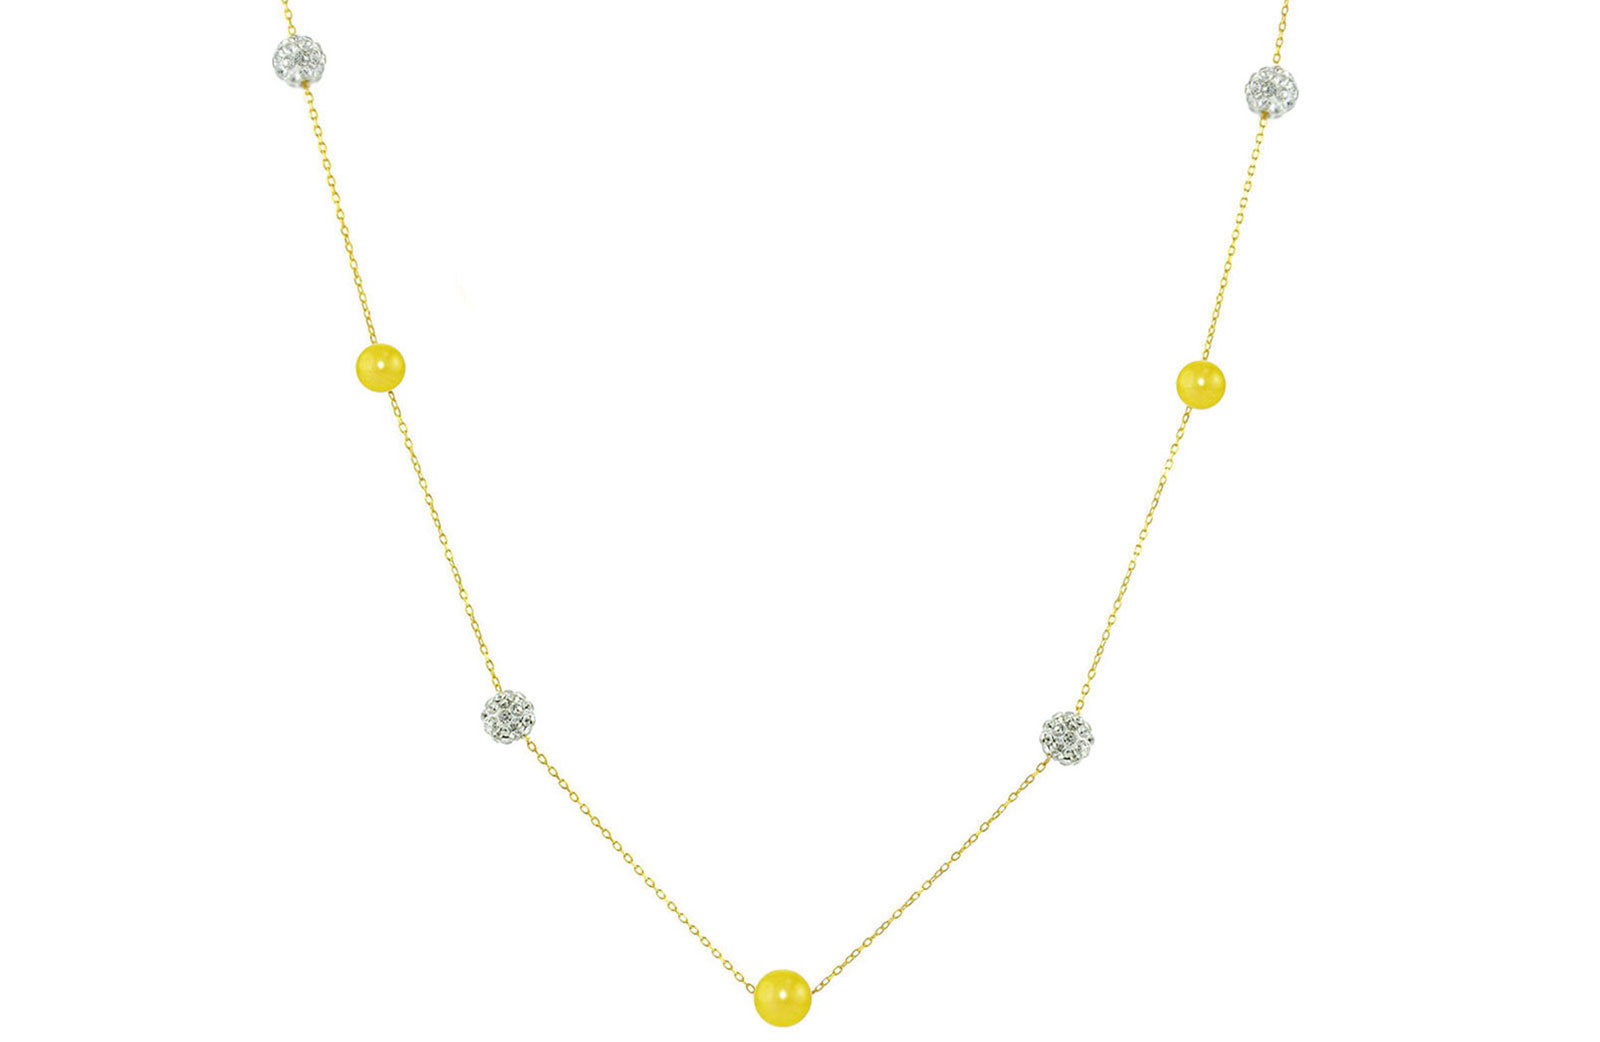 Vera Perla 18K Solid Gold Gradual Built-in 5-6mm Yellow Pearls and Crystal Ball Necklace